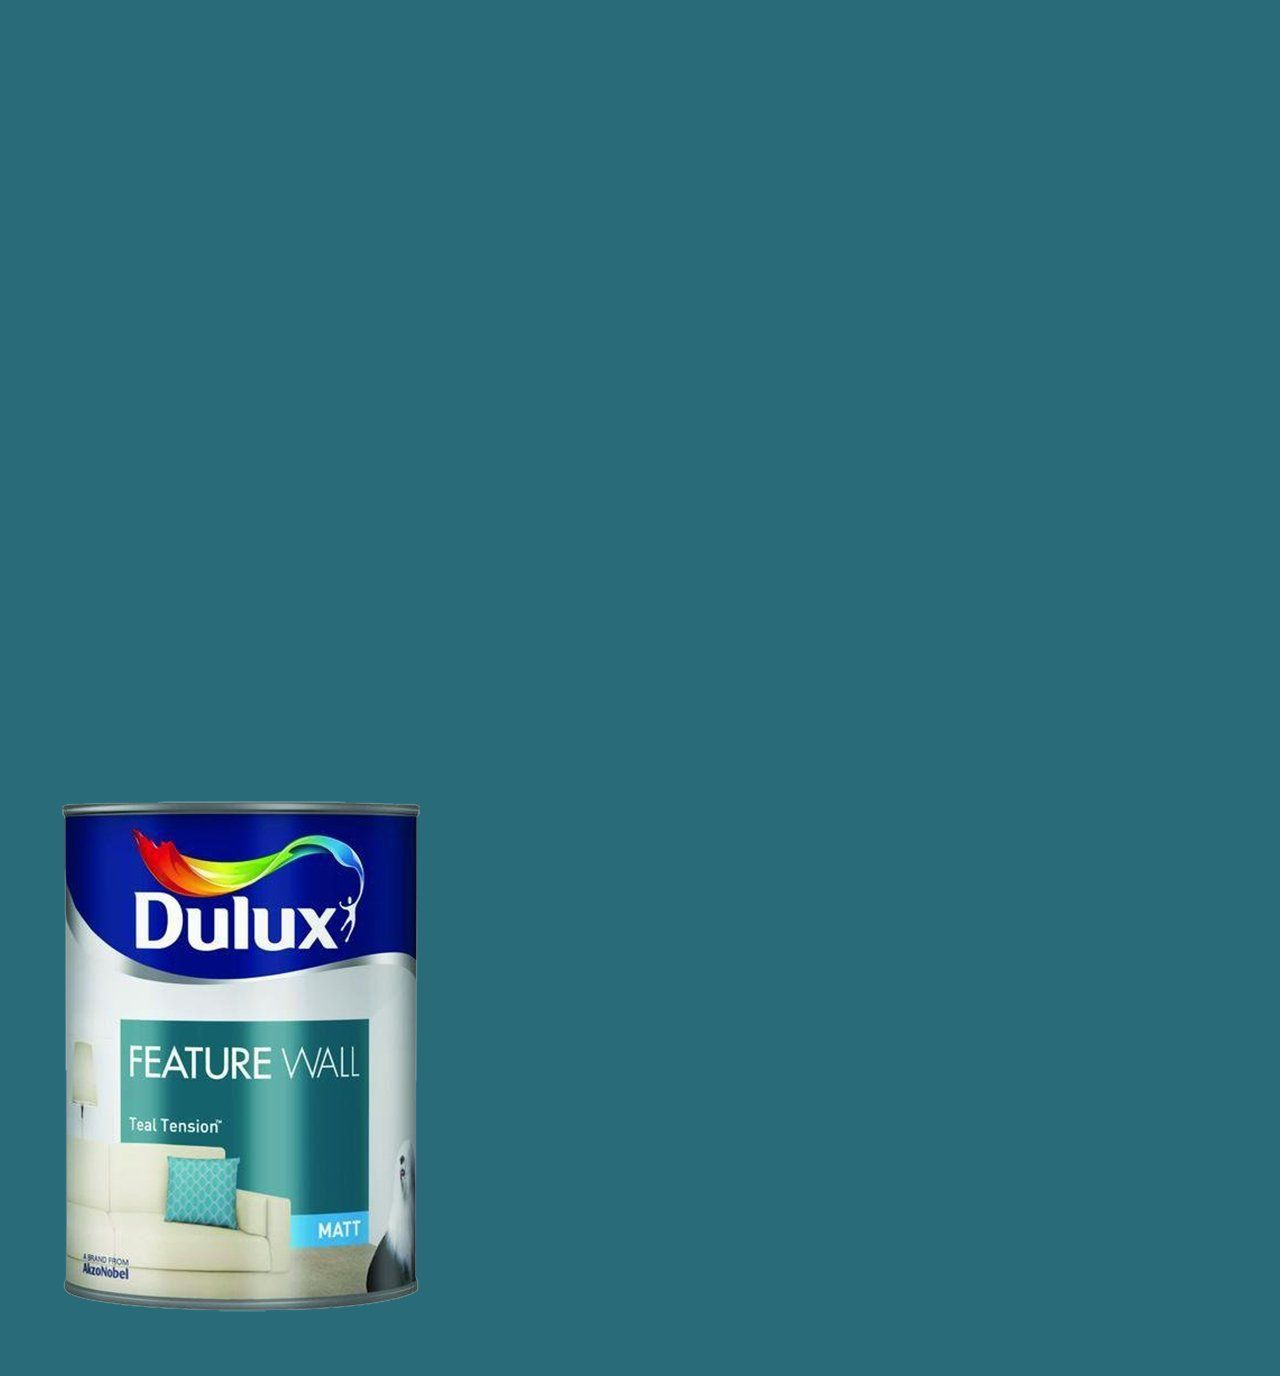 dulux feature wall paint teal tension diy. Black Bedroom Furniture Sets. Home Design Ideas